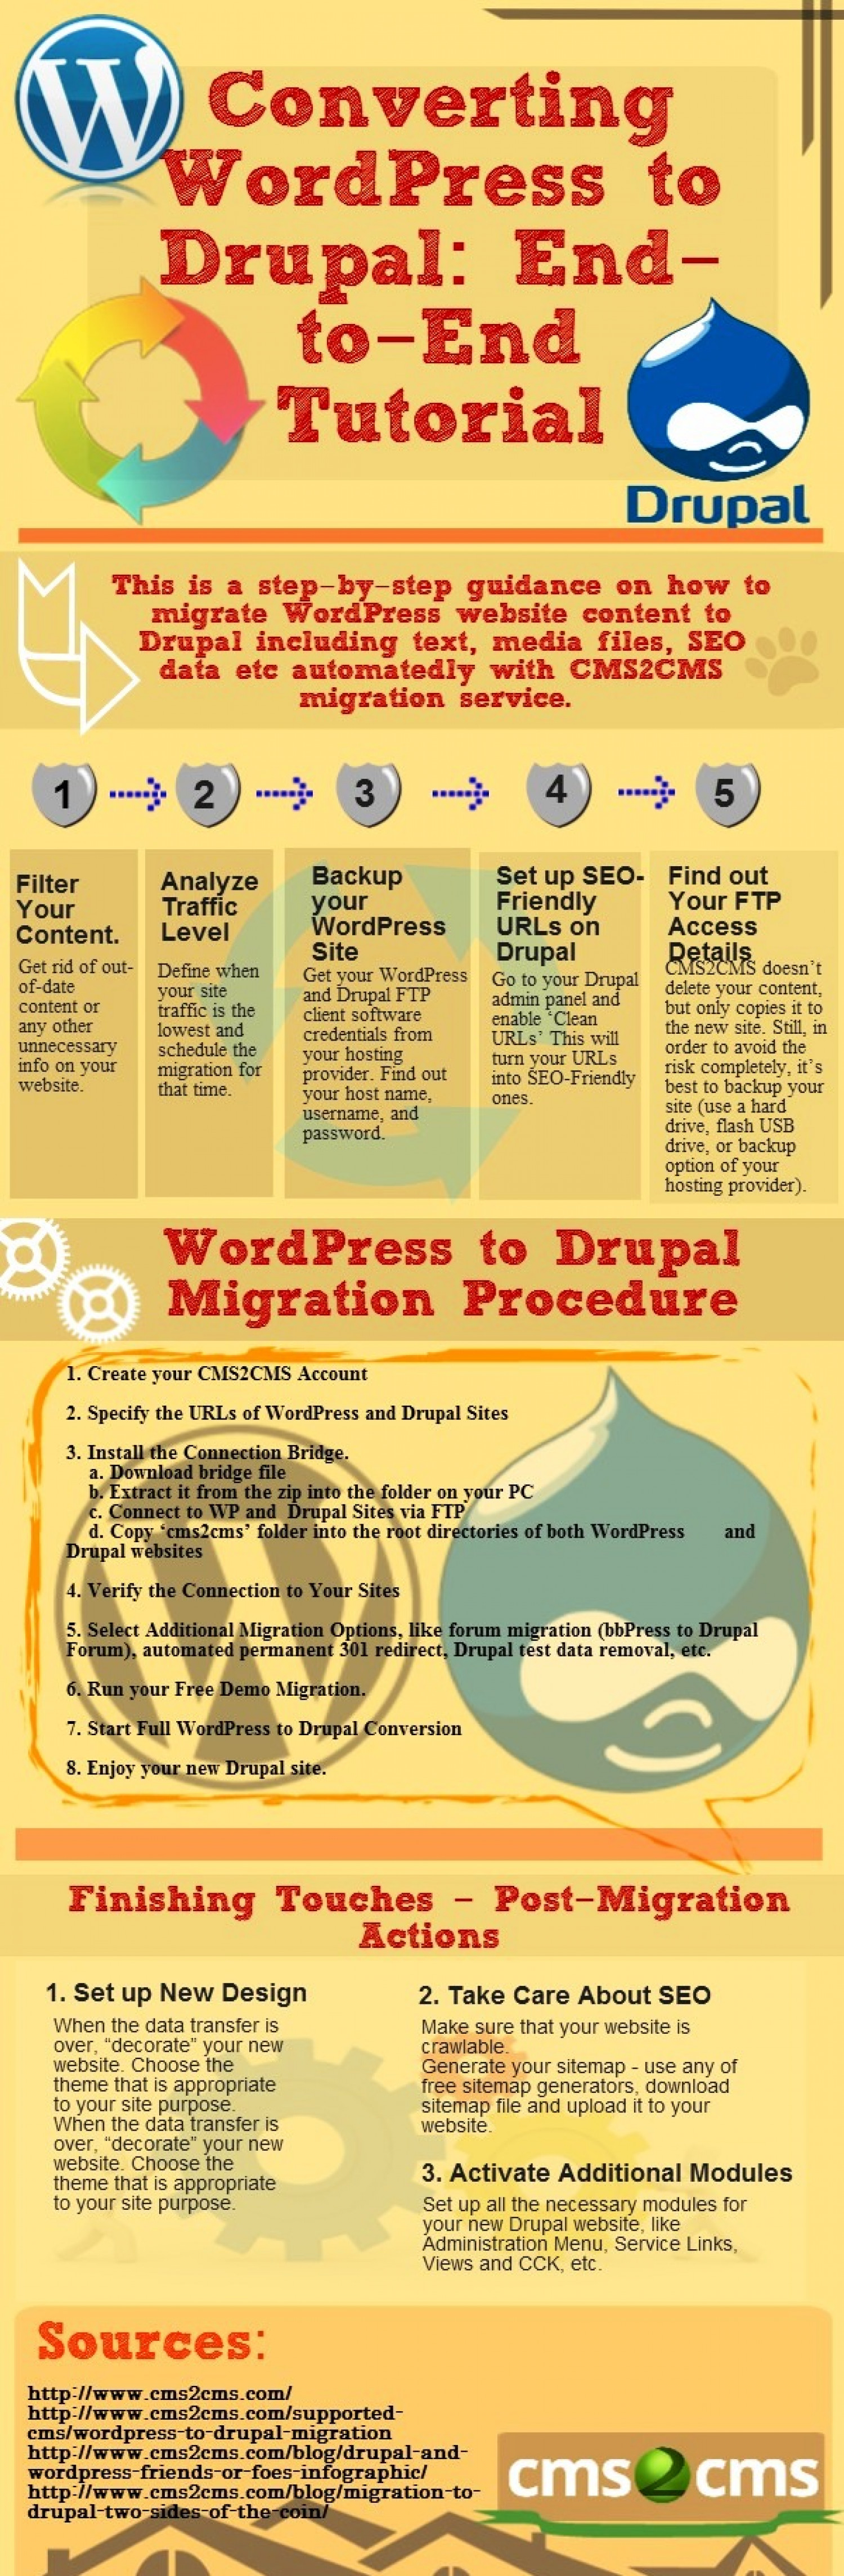 Converting wordpress to drupal end to end tutorial wordpress to drupal step by step infographic baditri Images